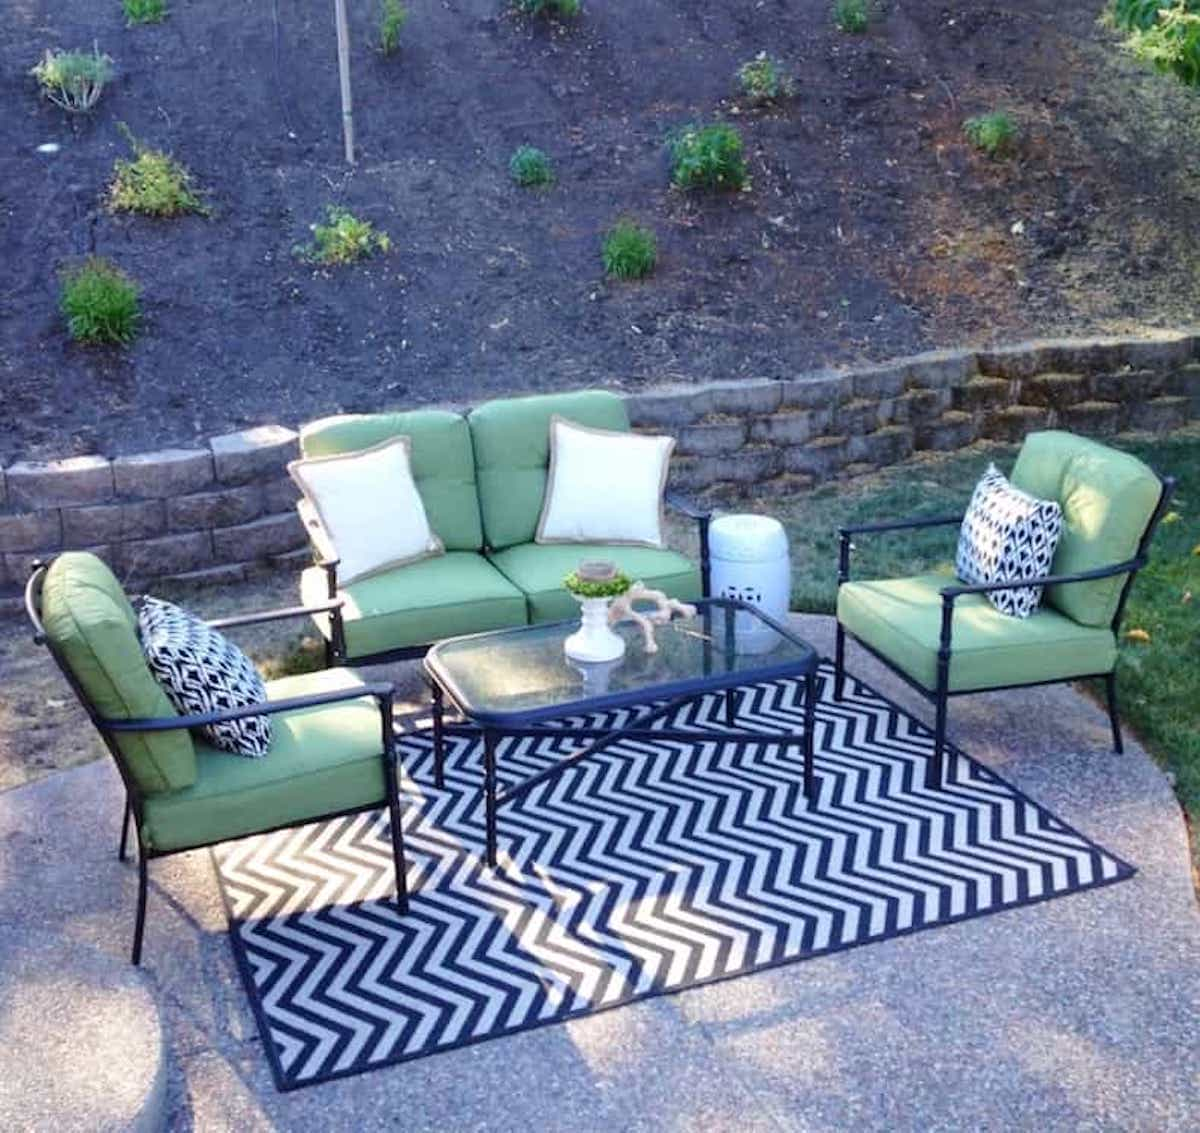 Black And White Geometric Pattern Small Outdoor Rugs For Patios (View 11 of 15)